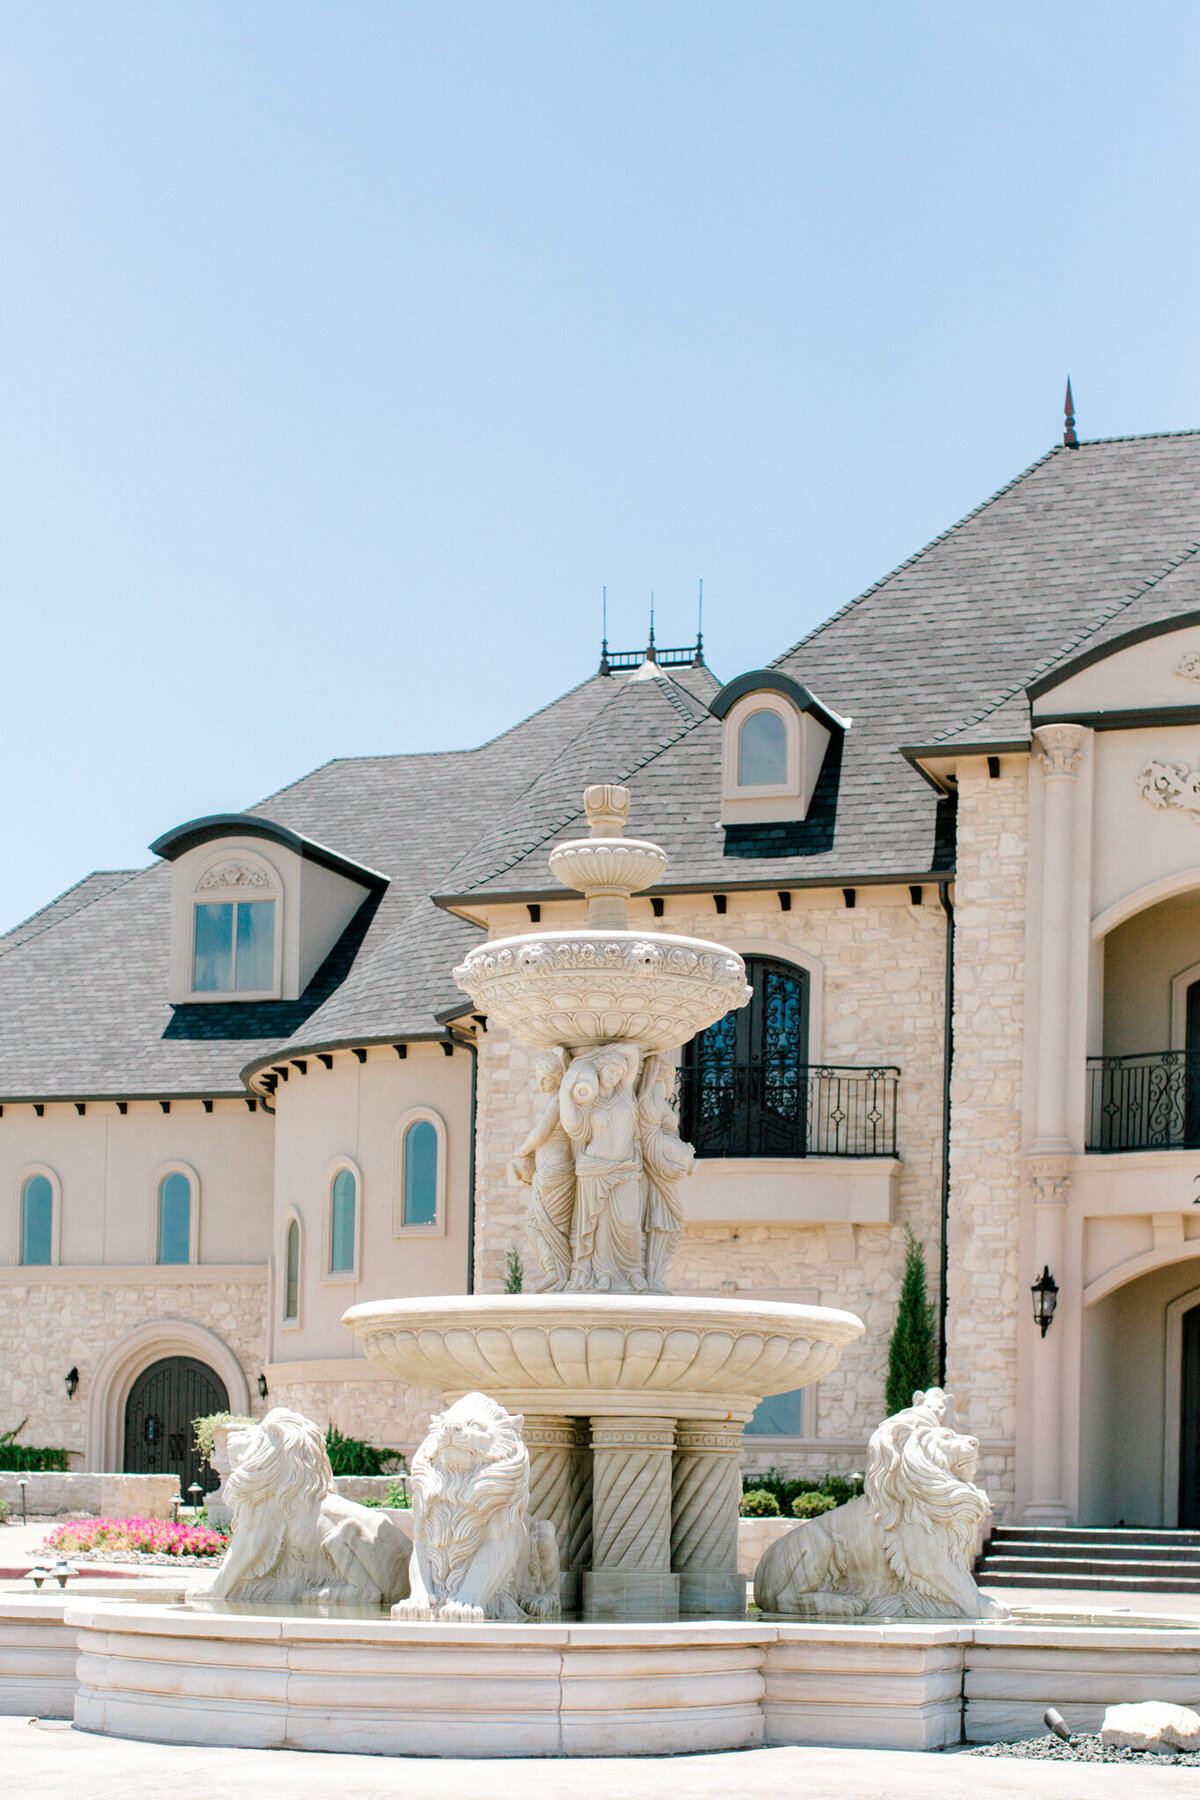 Jasmine & Josh Wedding at Knotting Hill Place | Dallas DFW Wedding Photographer | Sami Kathryn Photography-18